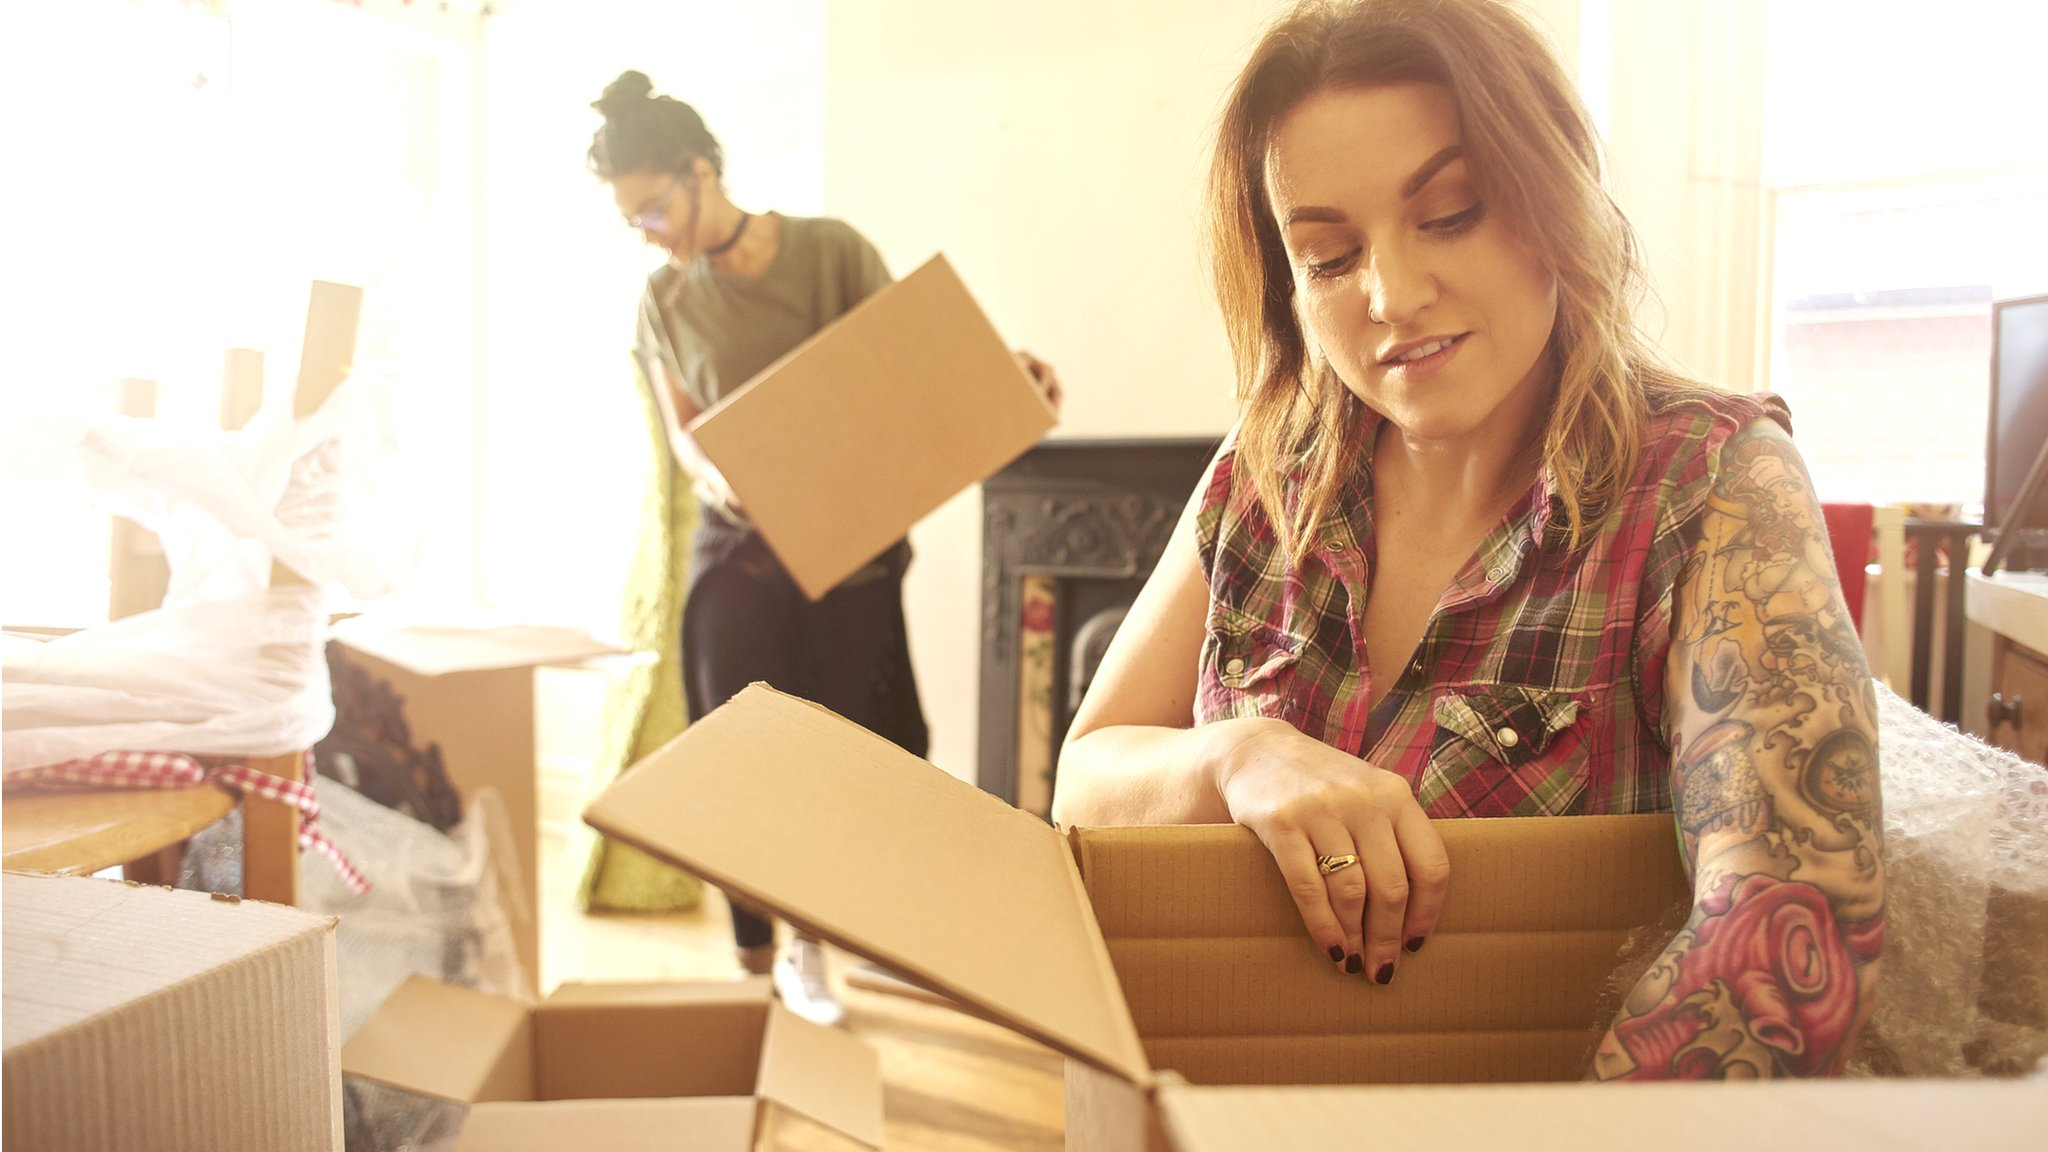 Young woman packing a box as she moves house